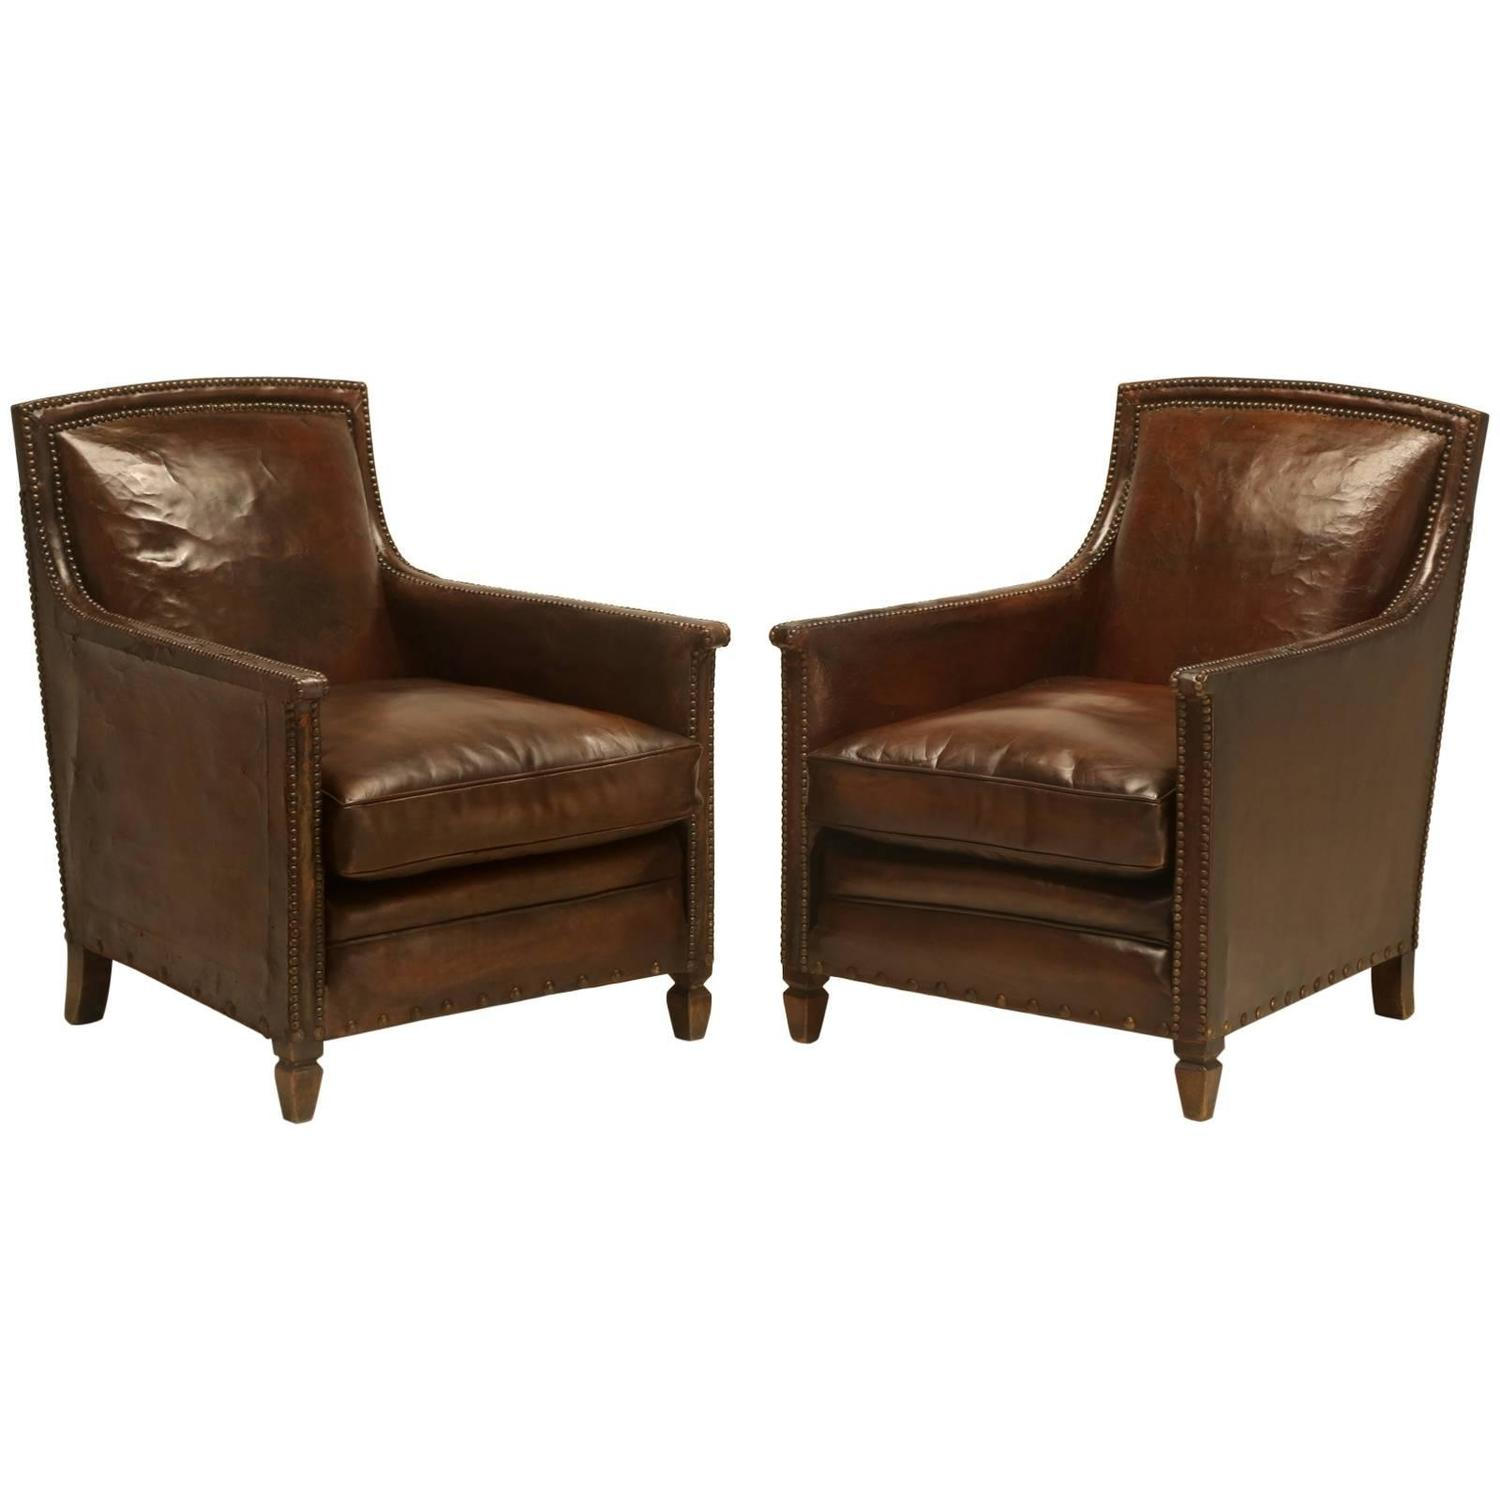 French art deco club chairs at 1stdibs for Art deco furniture chicago